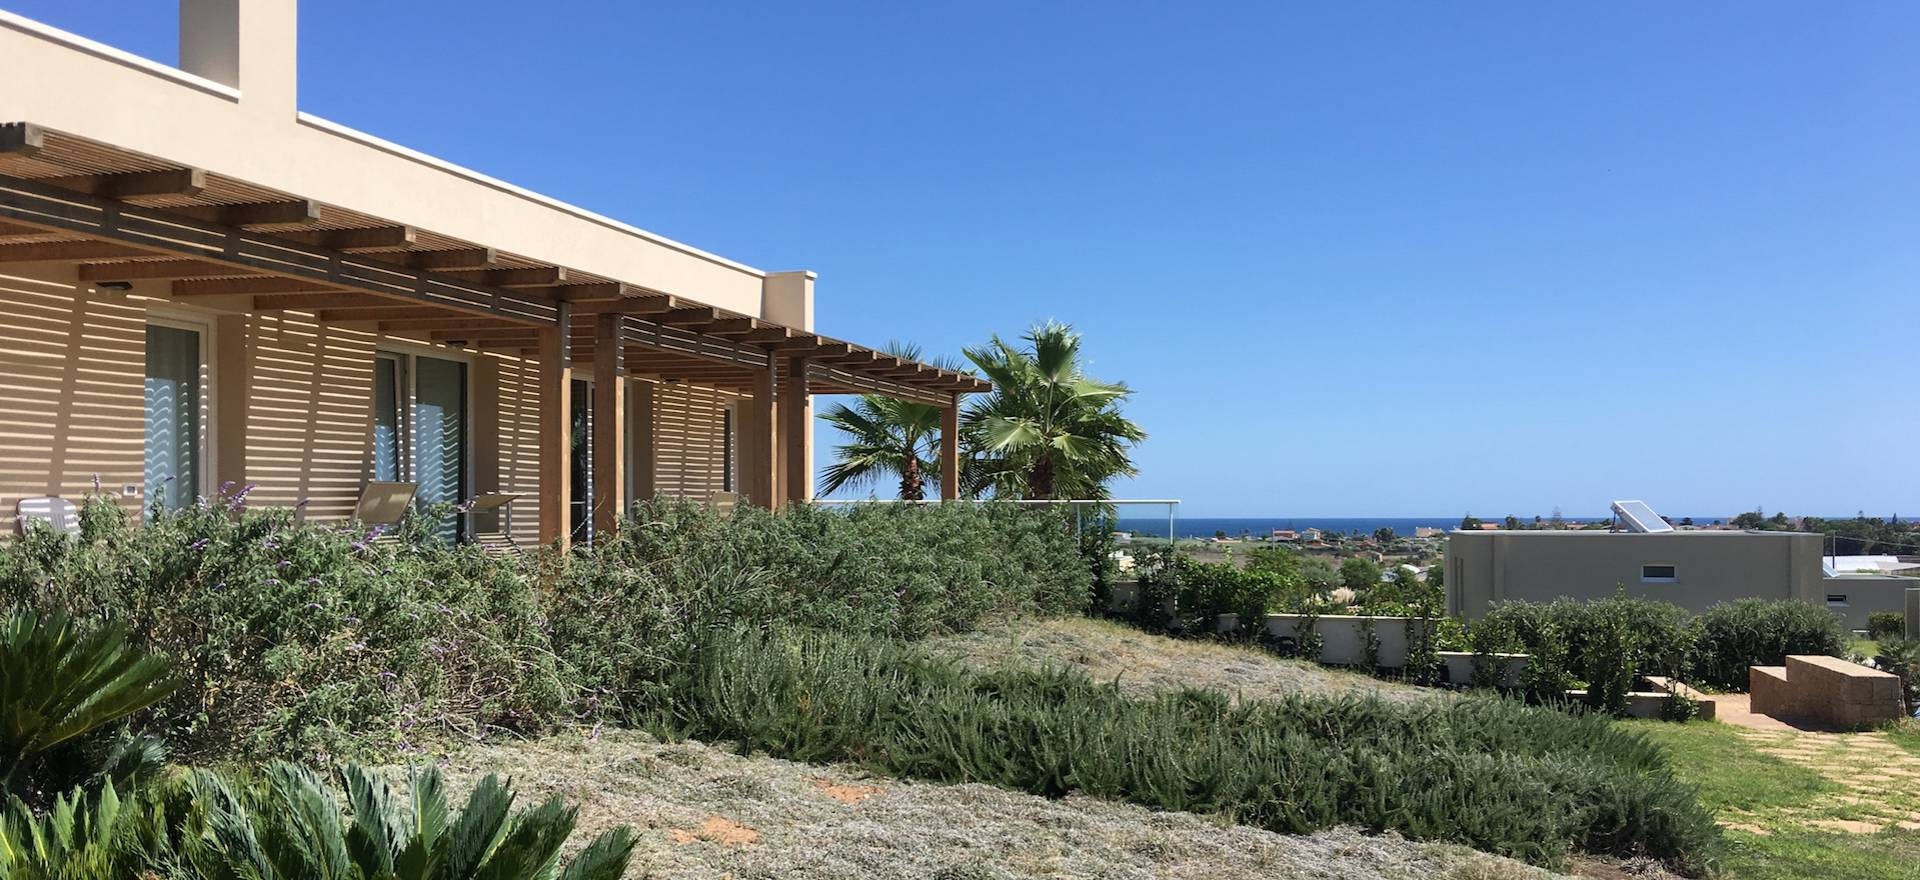 Agriturismo Sicily Luxury agritursmo for beach lovers